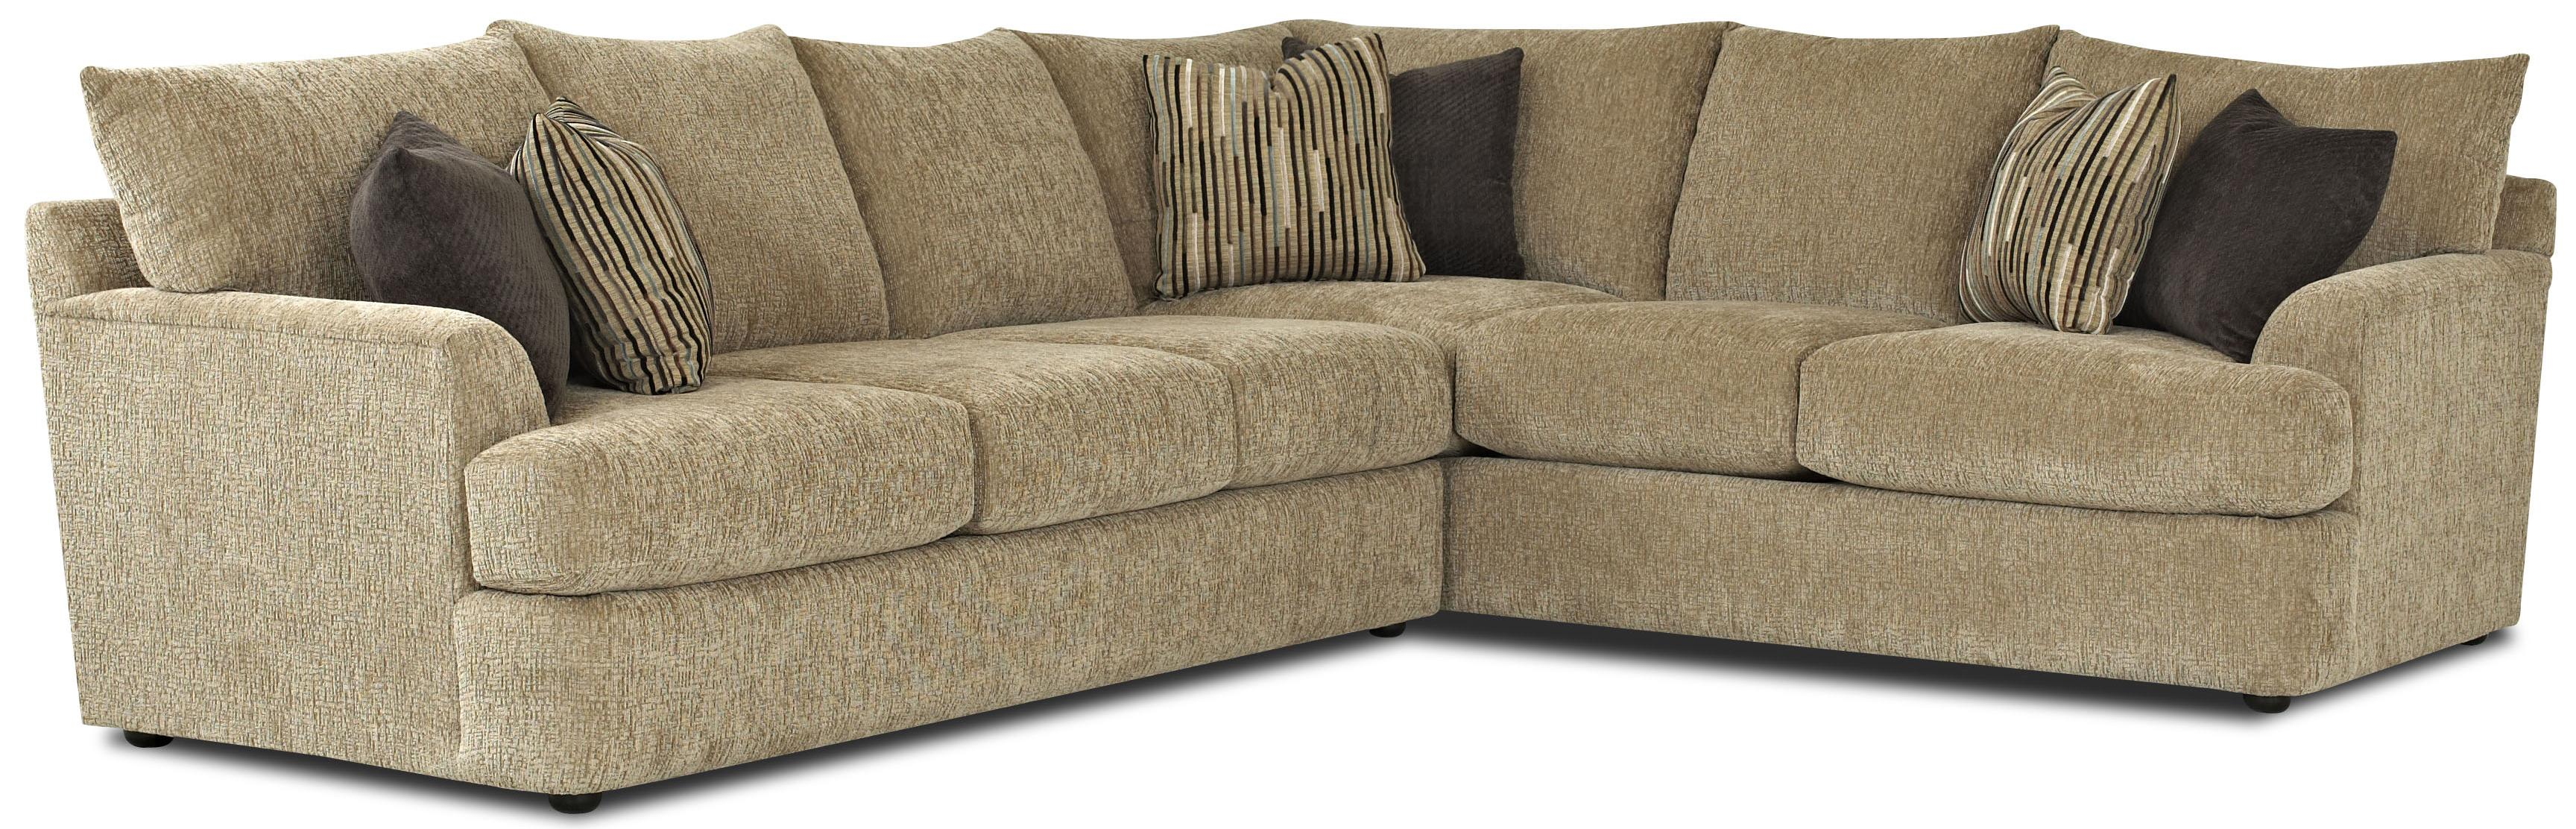 lshaped sectional sofa